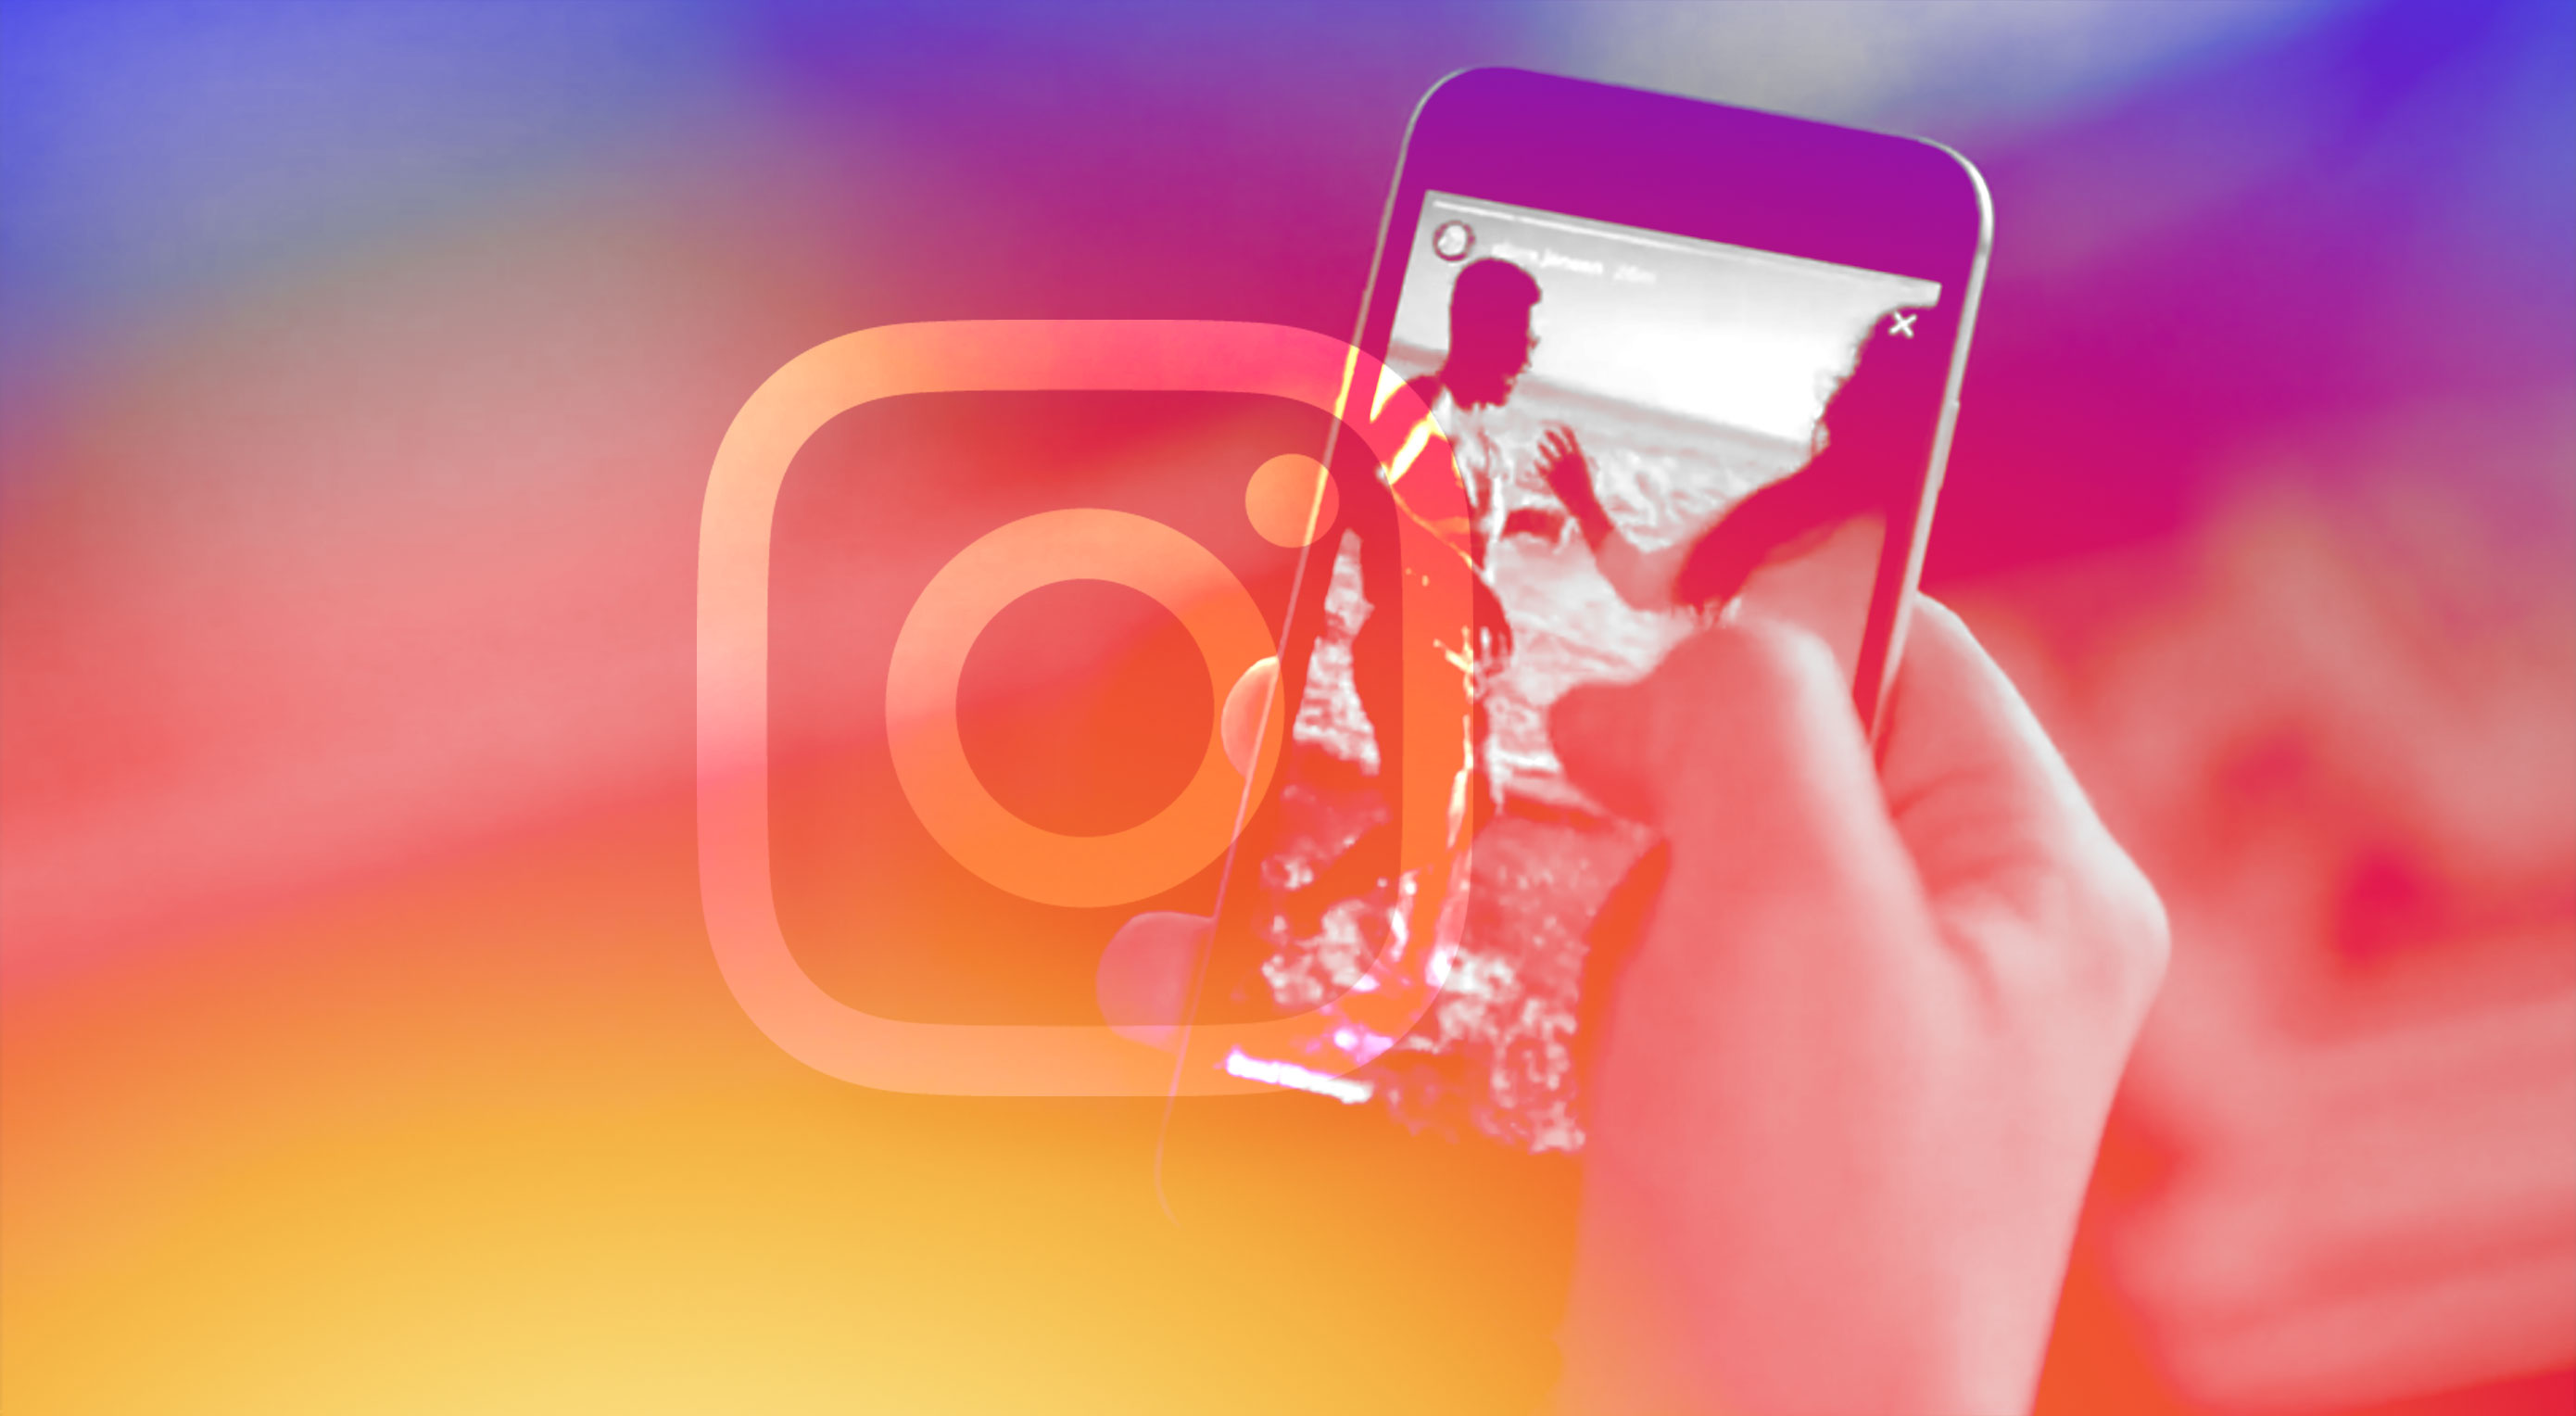 How Instagram Tracks View Counts (And Why You Should Care)